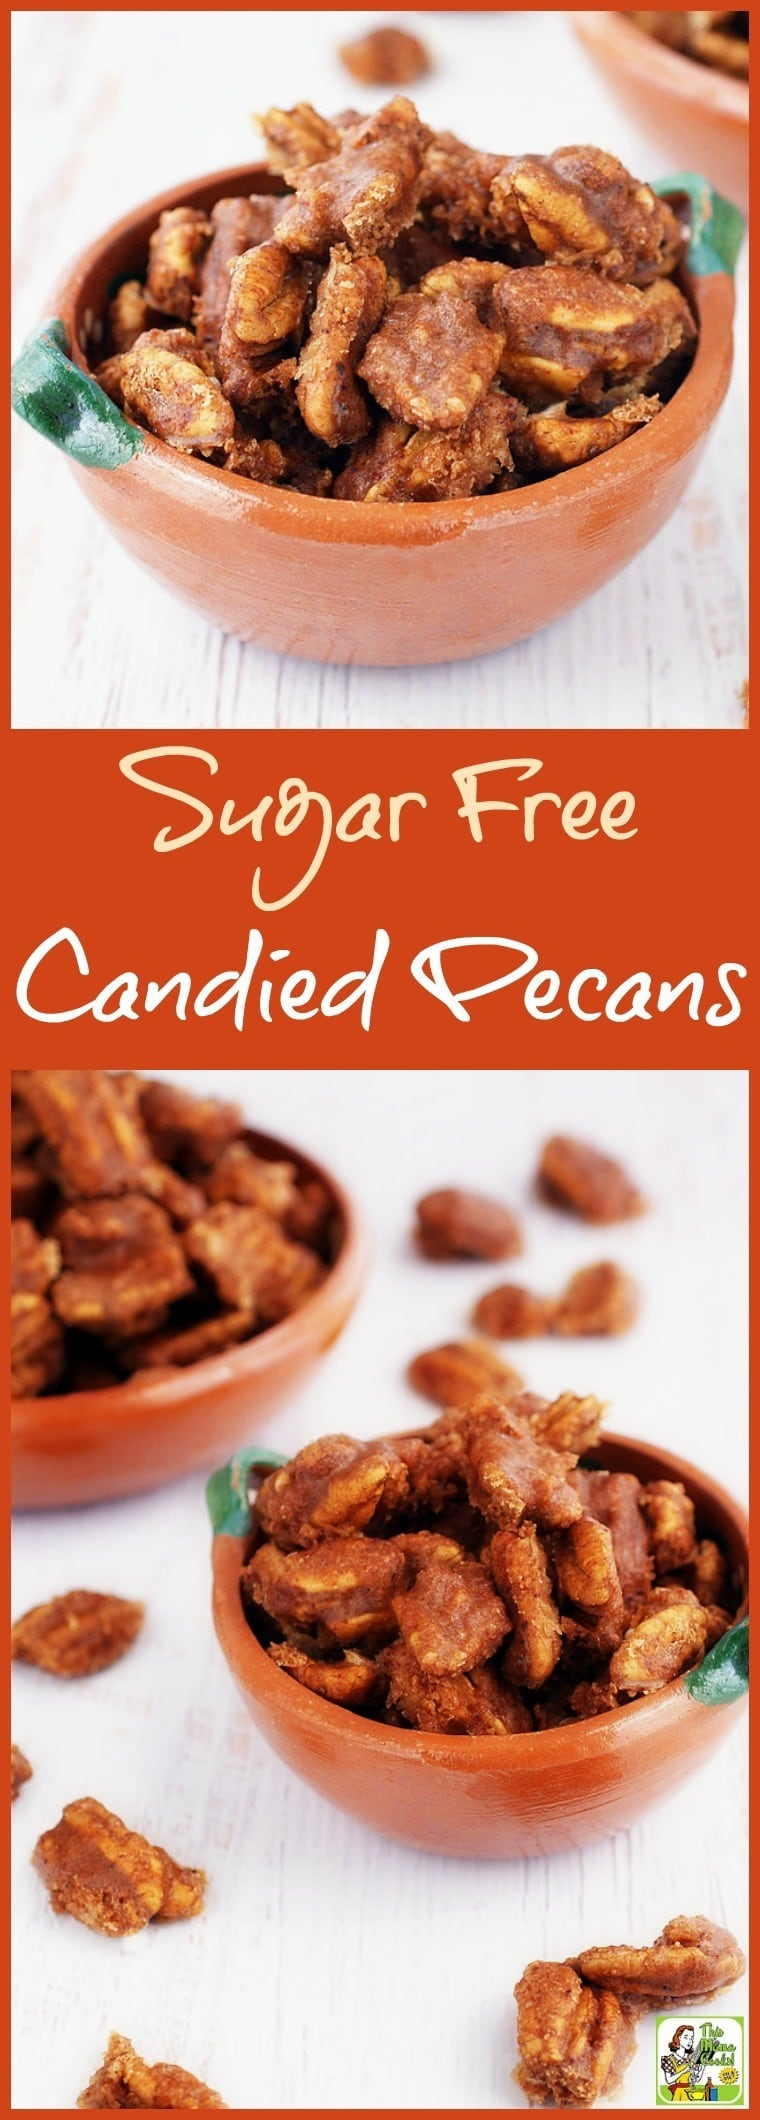 This easy Sugar Free Candied Pecans recipe makes a wonderful homemade gift. You can also use the sugar free candied pecans in salads, in baking, on yogurt, and in granola and trail mix. It's made with natural, no calorie sweeteners for a guilt free candied pecan snack!